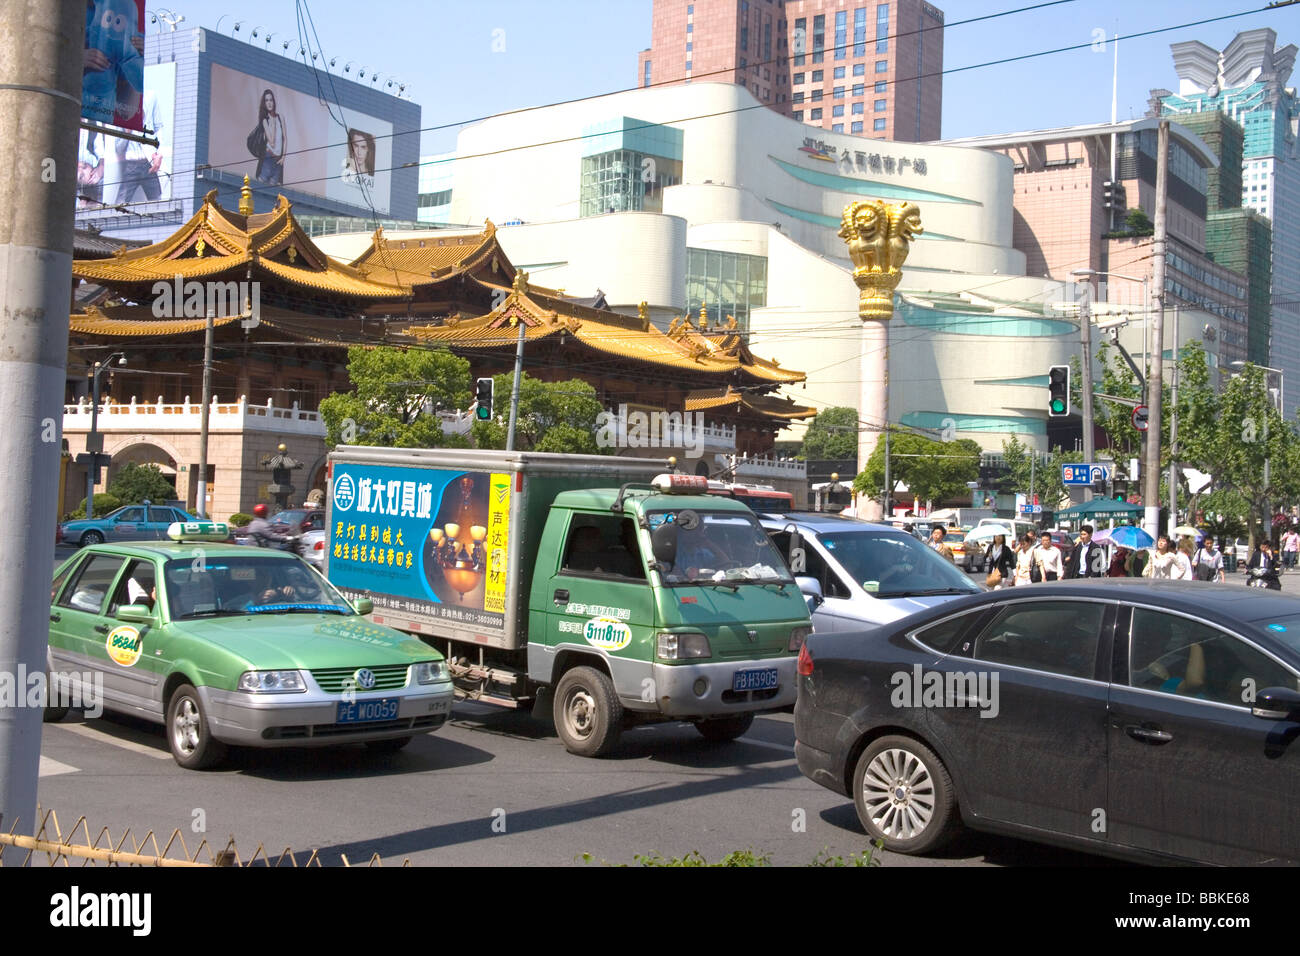 traffic chaos in shanghai China - Stock Image